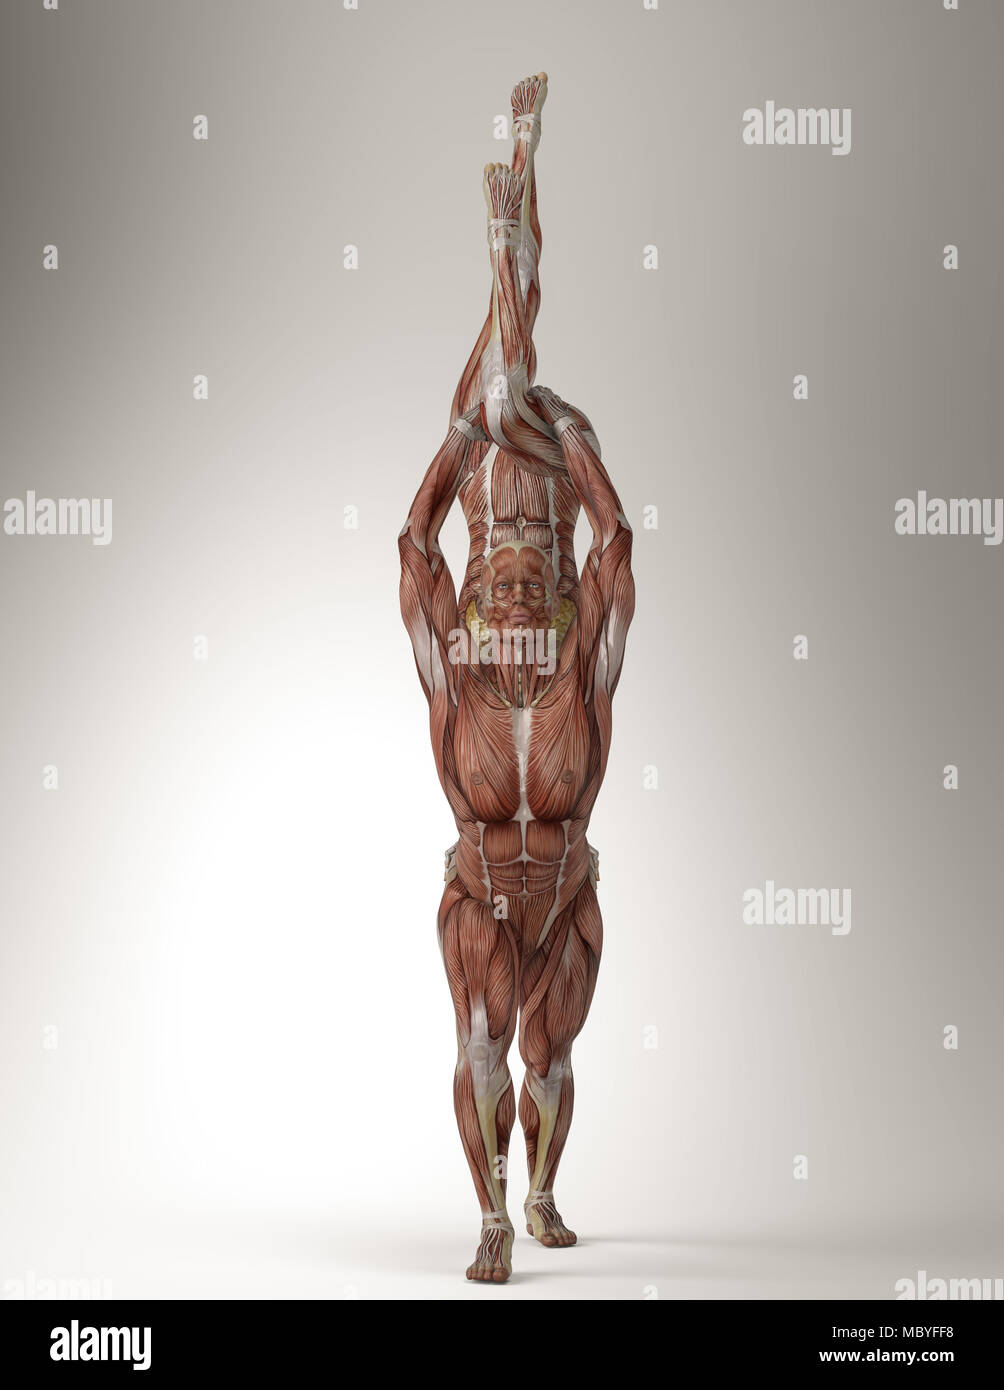 Couples yoga pose with male and female showing their muscle anatomy ...